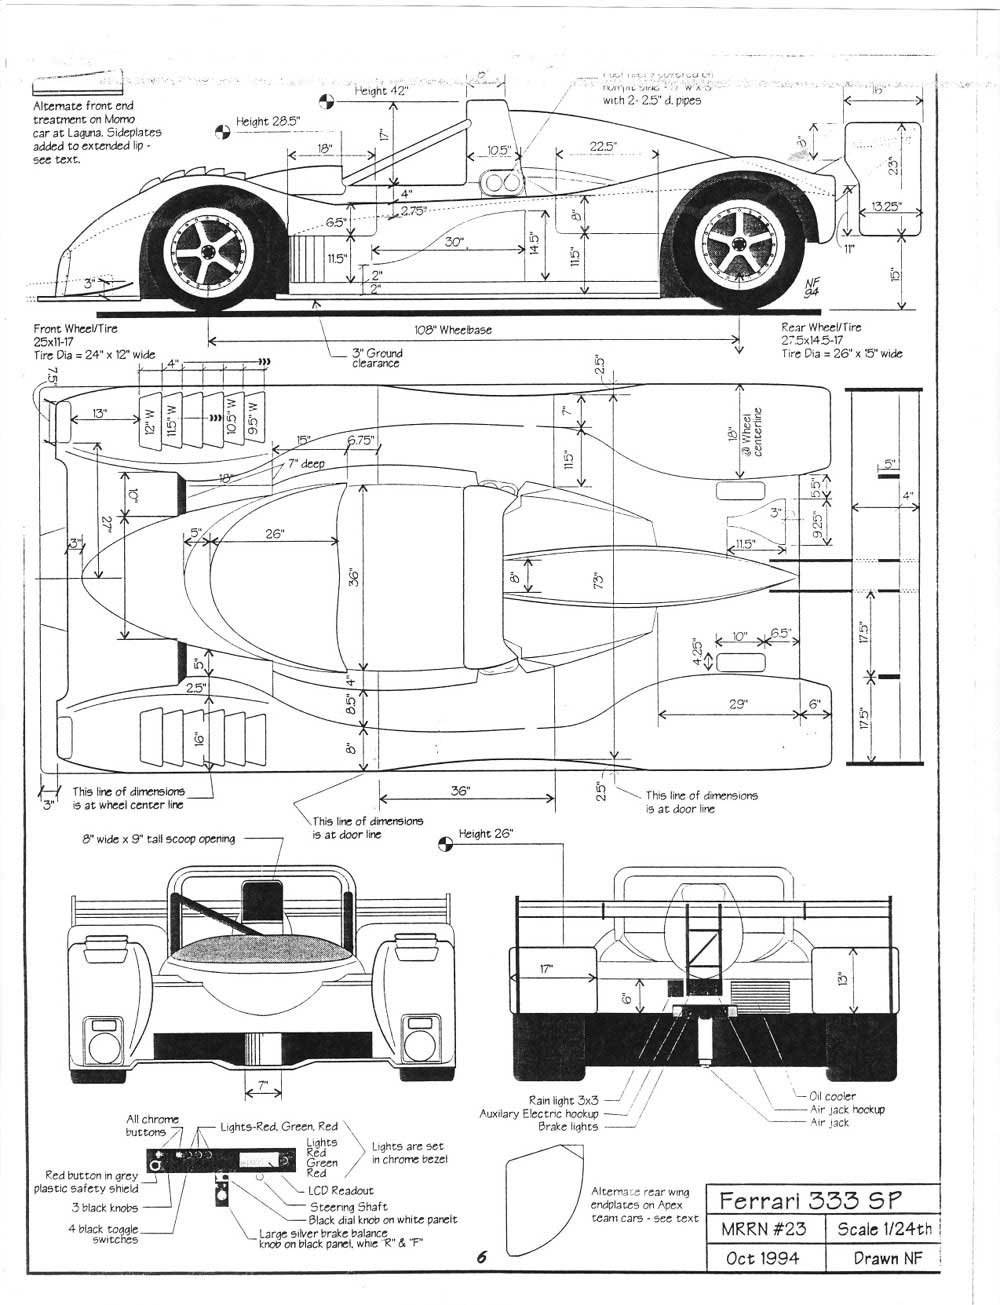 ferrari 250 gto 1964 smcarsnet car blueprints forum